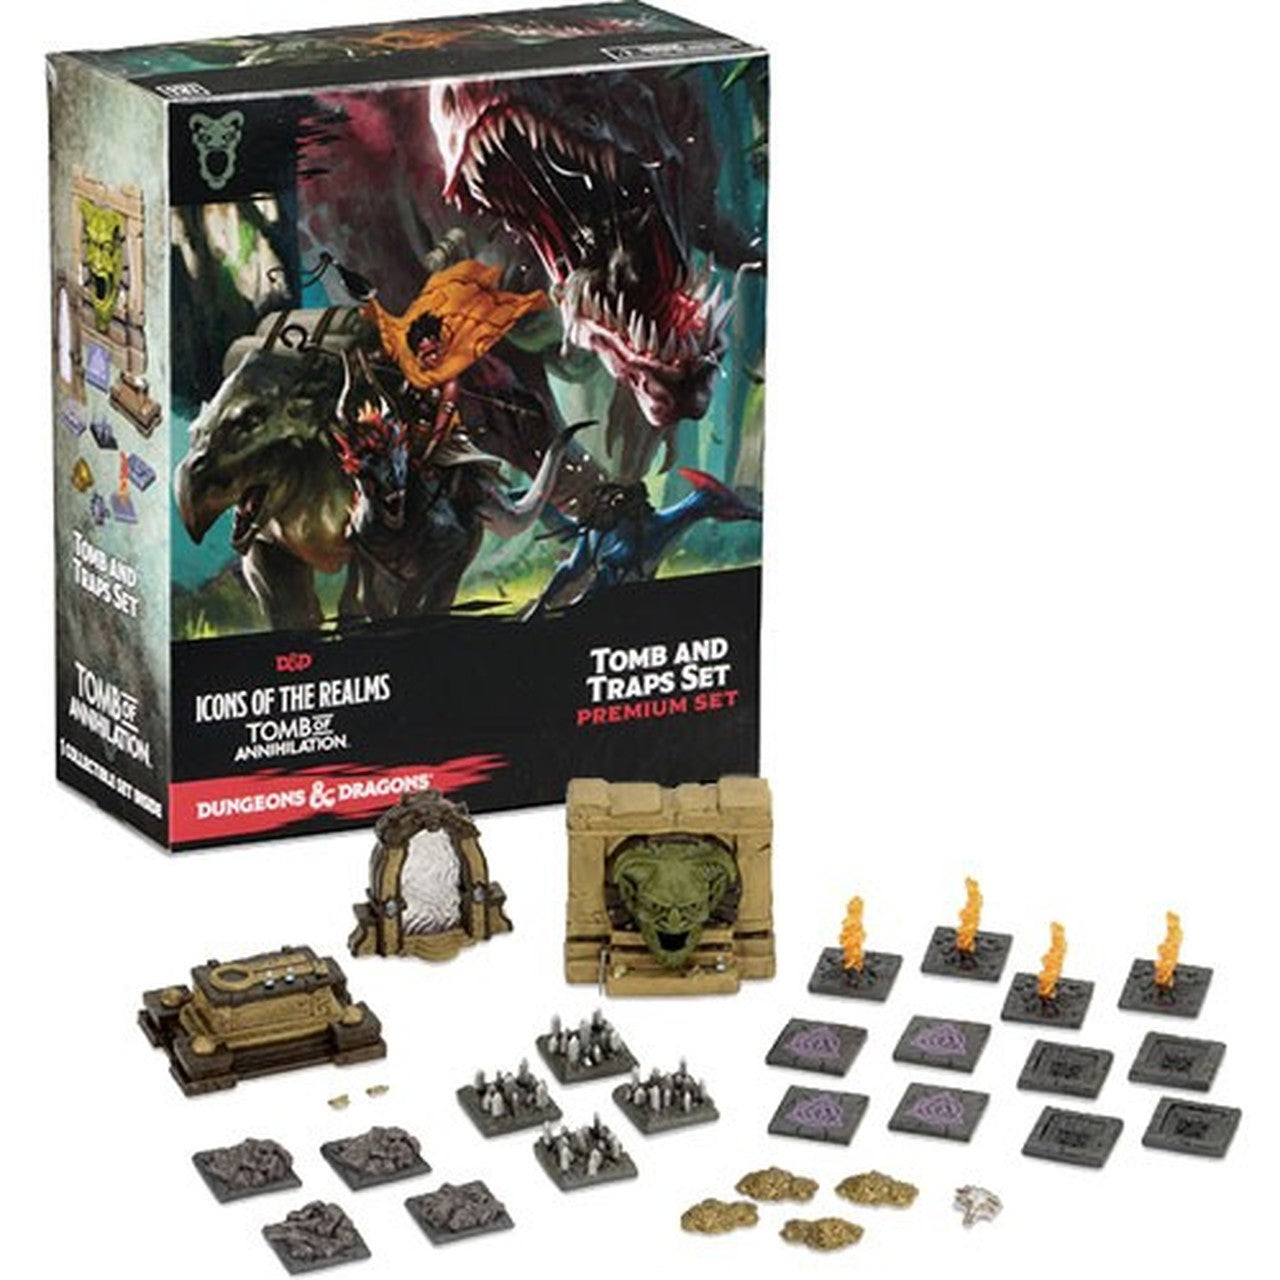 5e Icons of the Realms: Tomb of Annihilation - Tomb and Traps Premium Set | SKYFOX GAMES